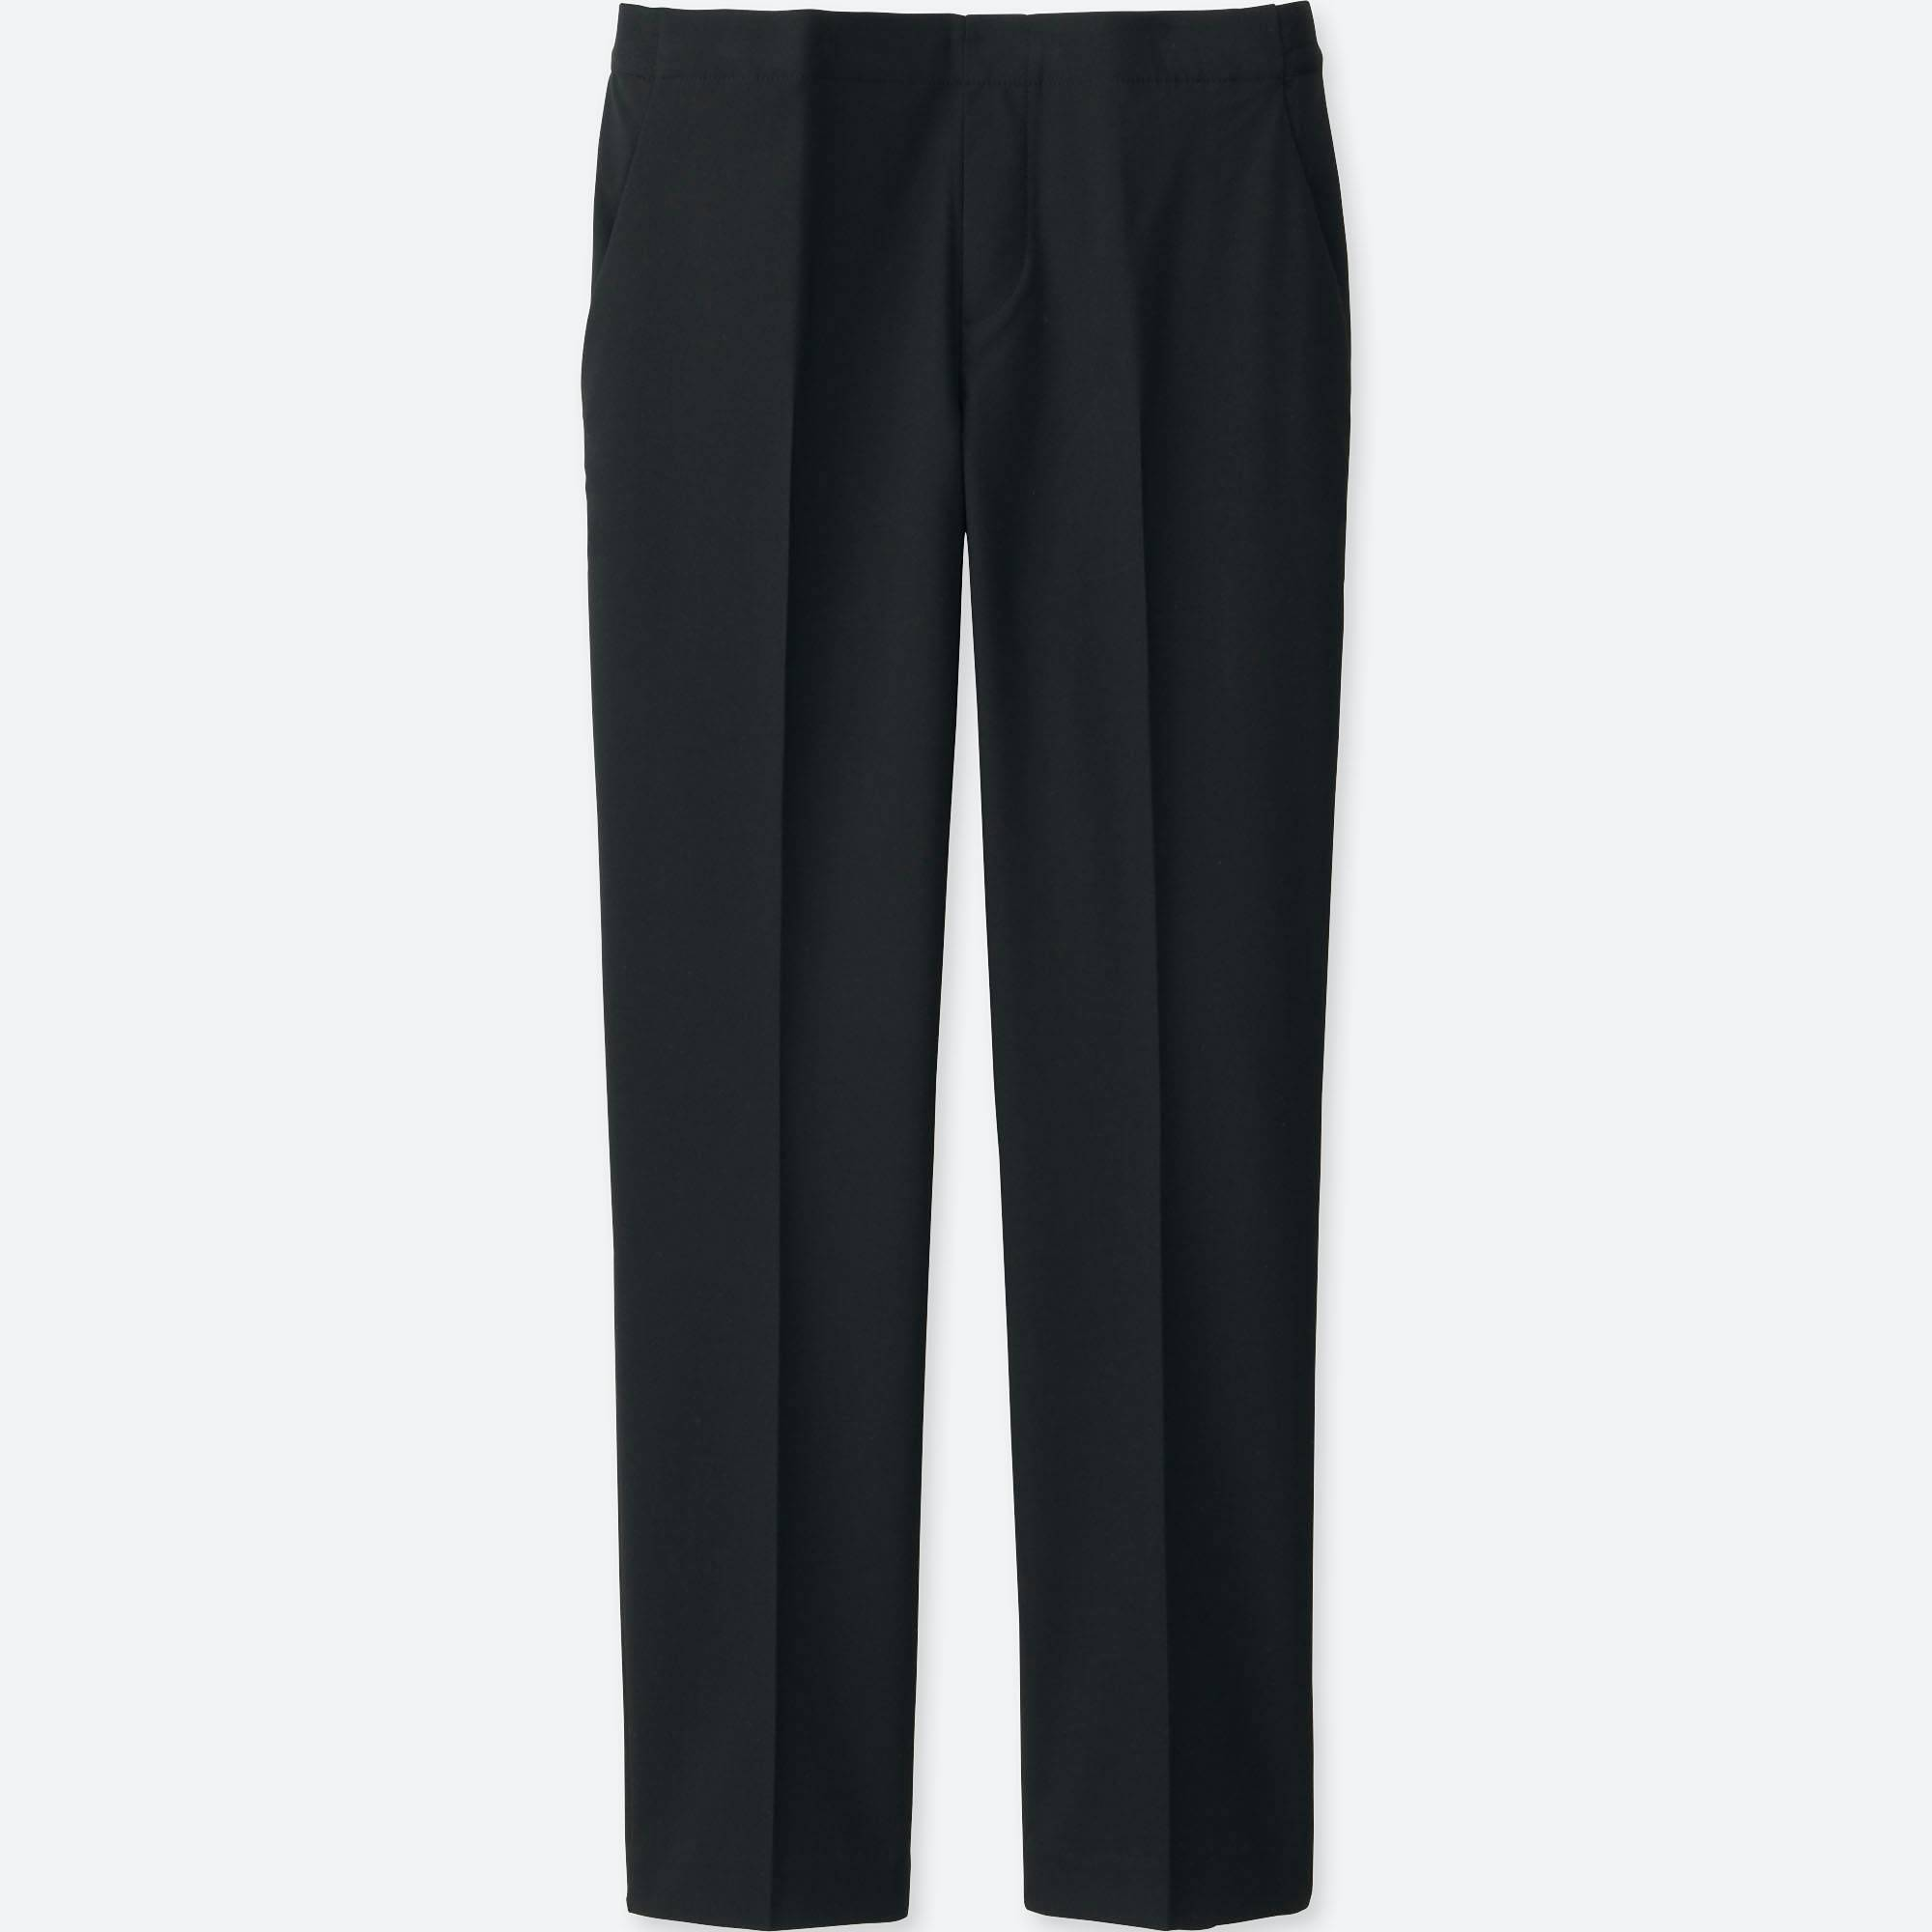 Womens Black Ankle Pants